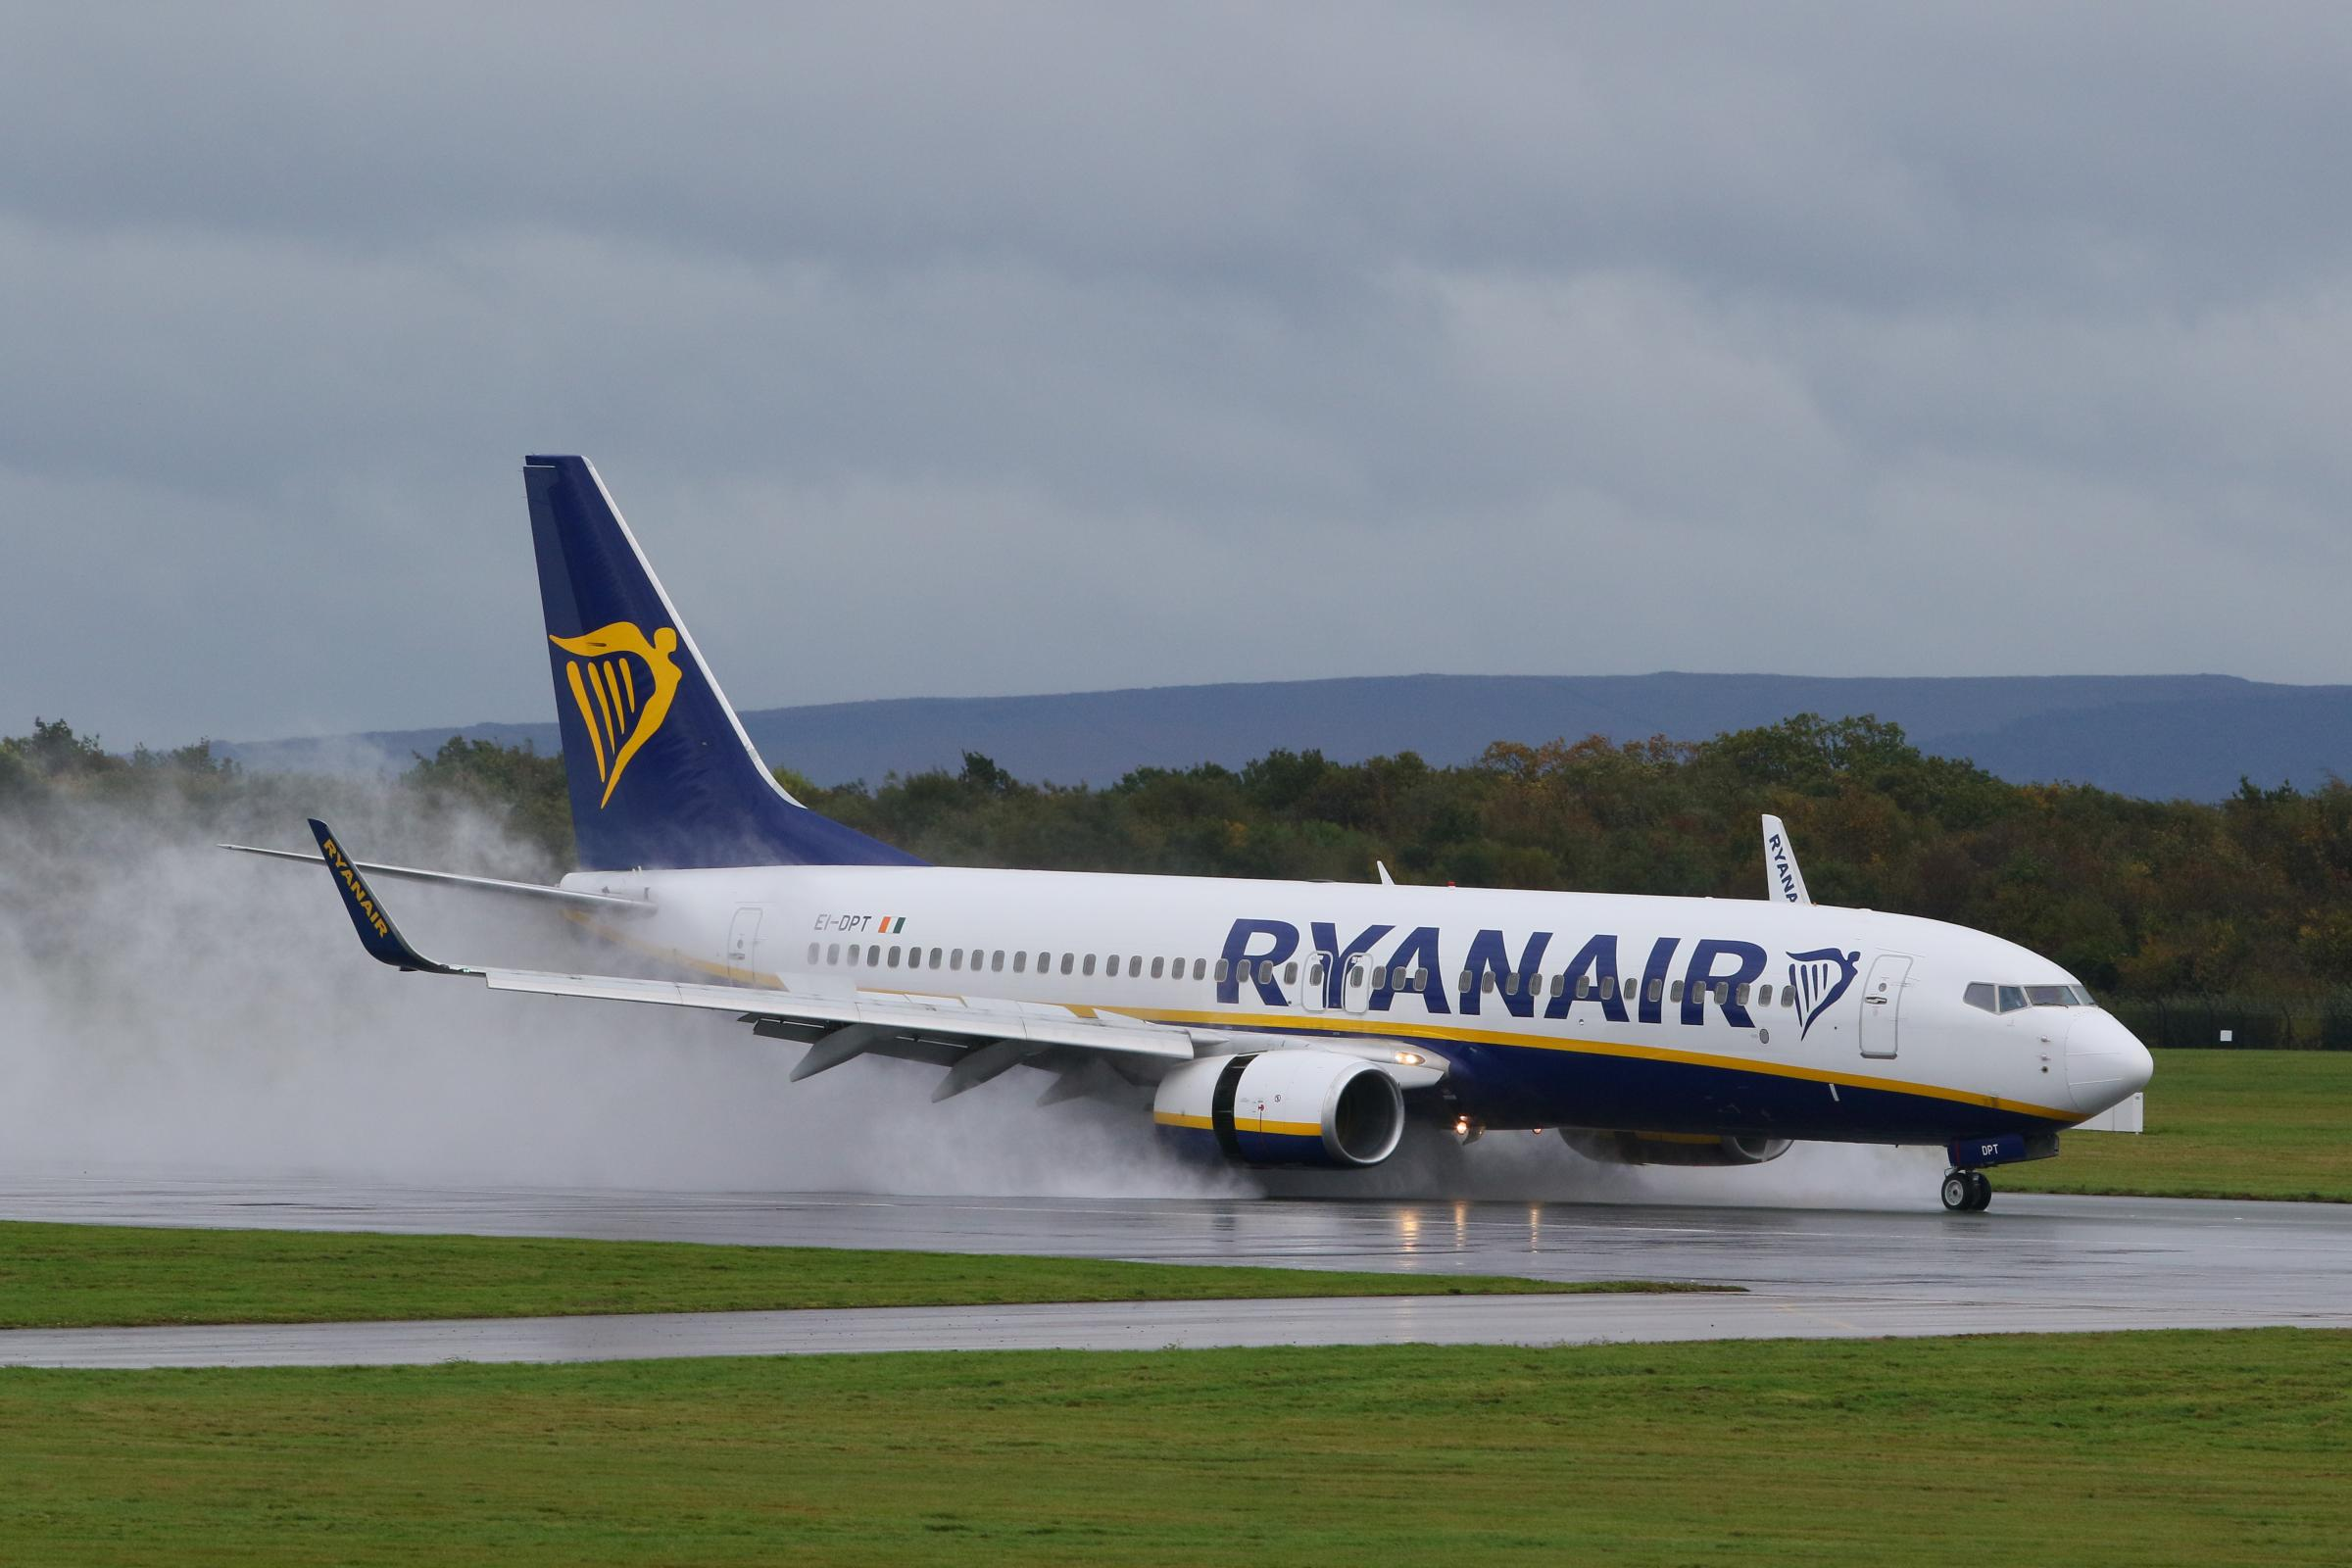 Calls To Boycott Ryanair As 'Racist' Passenger Referred To Police